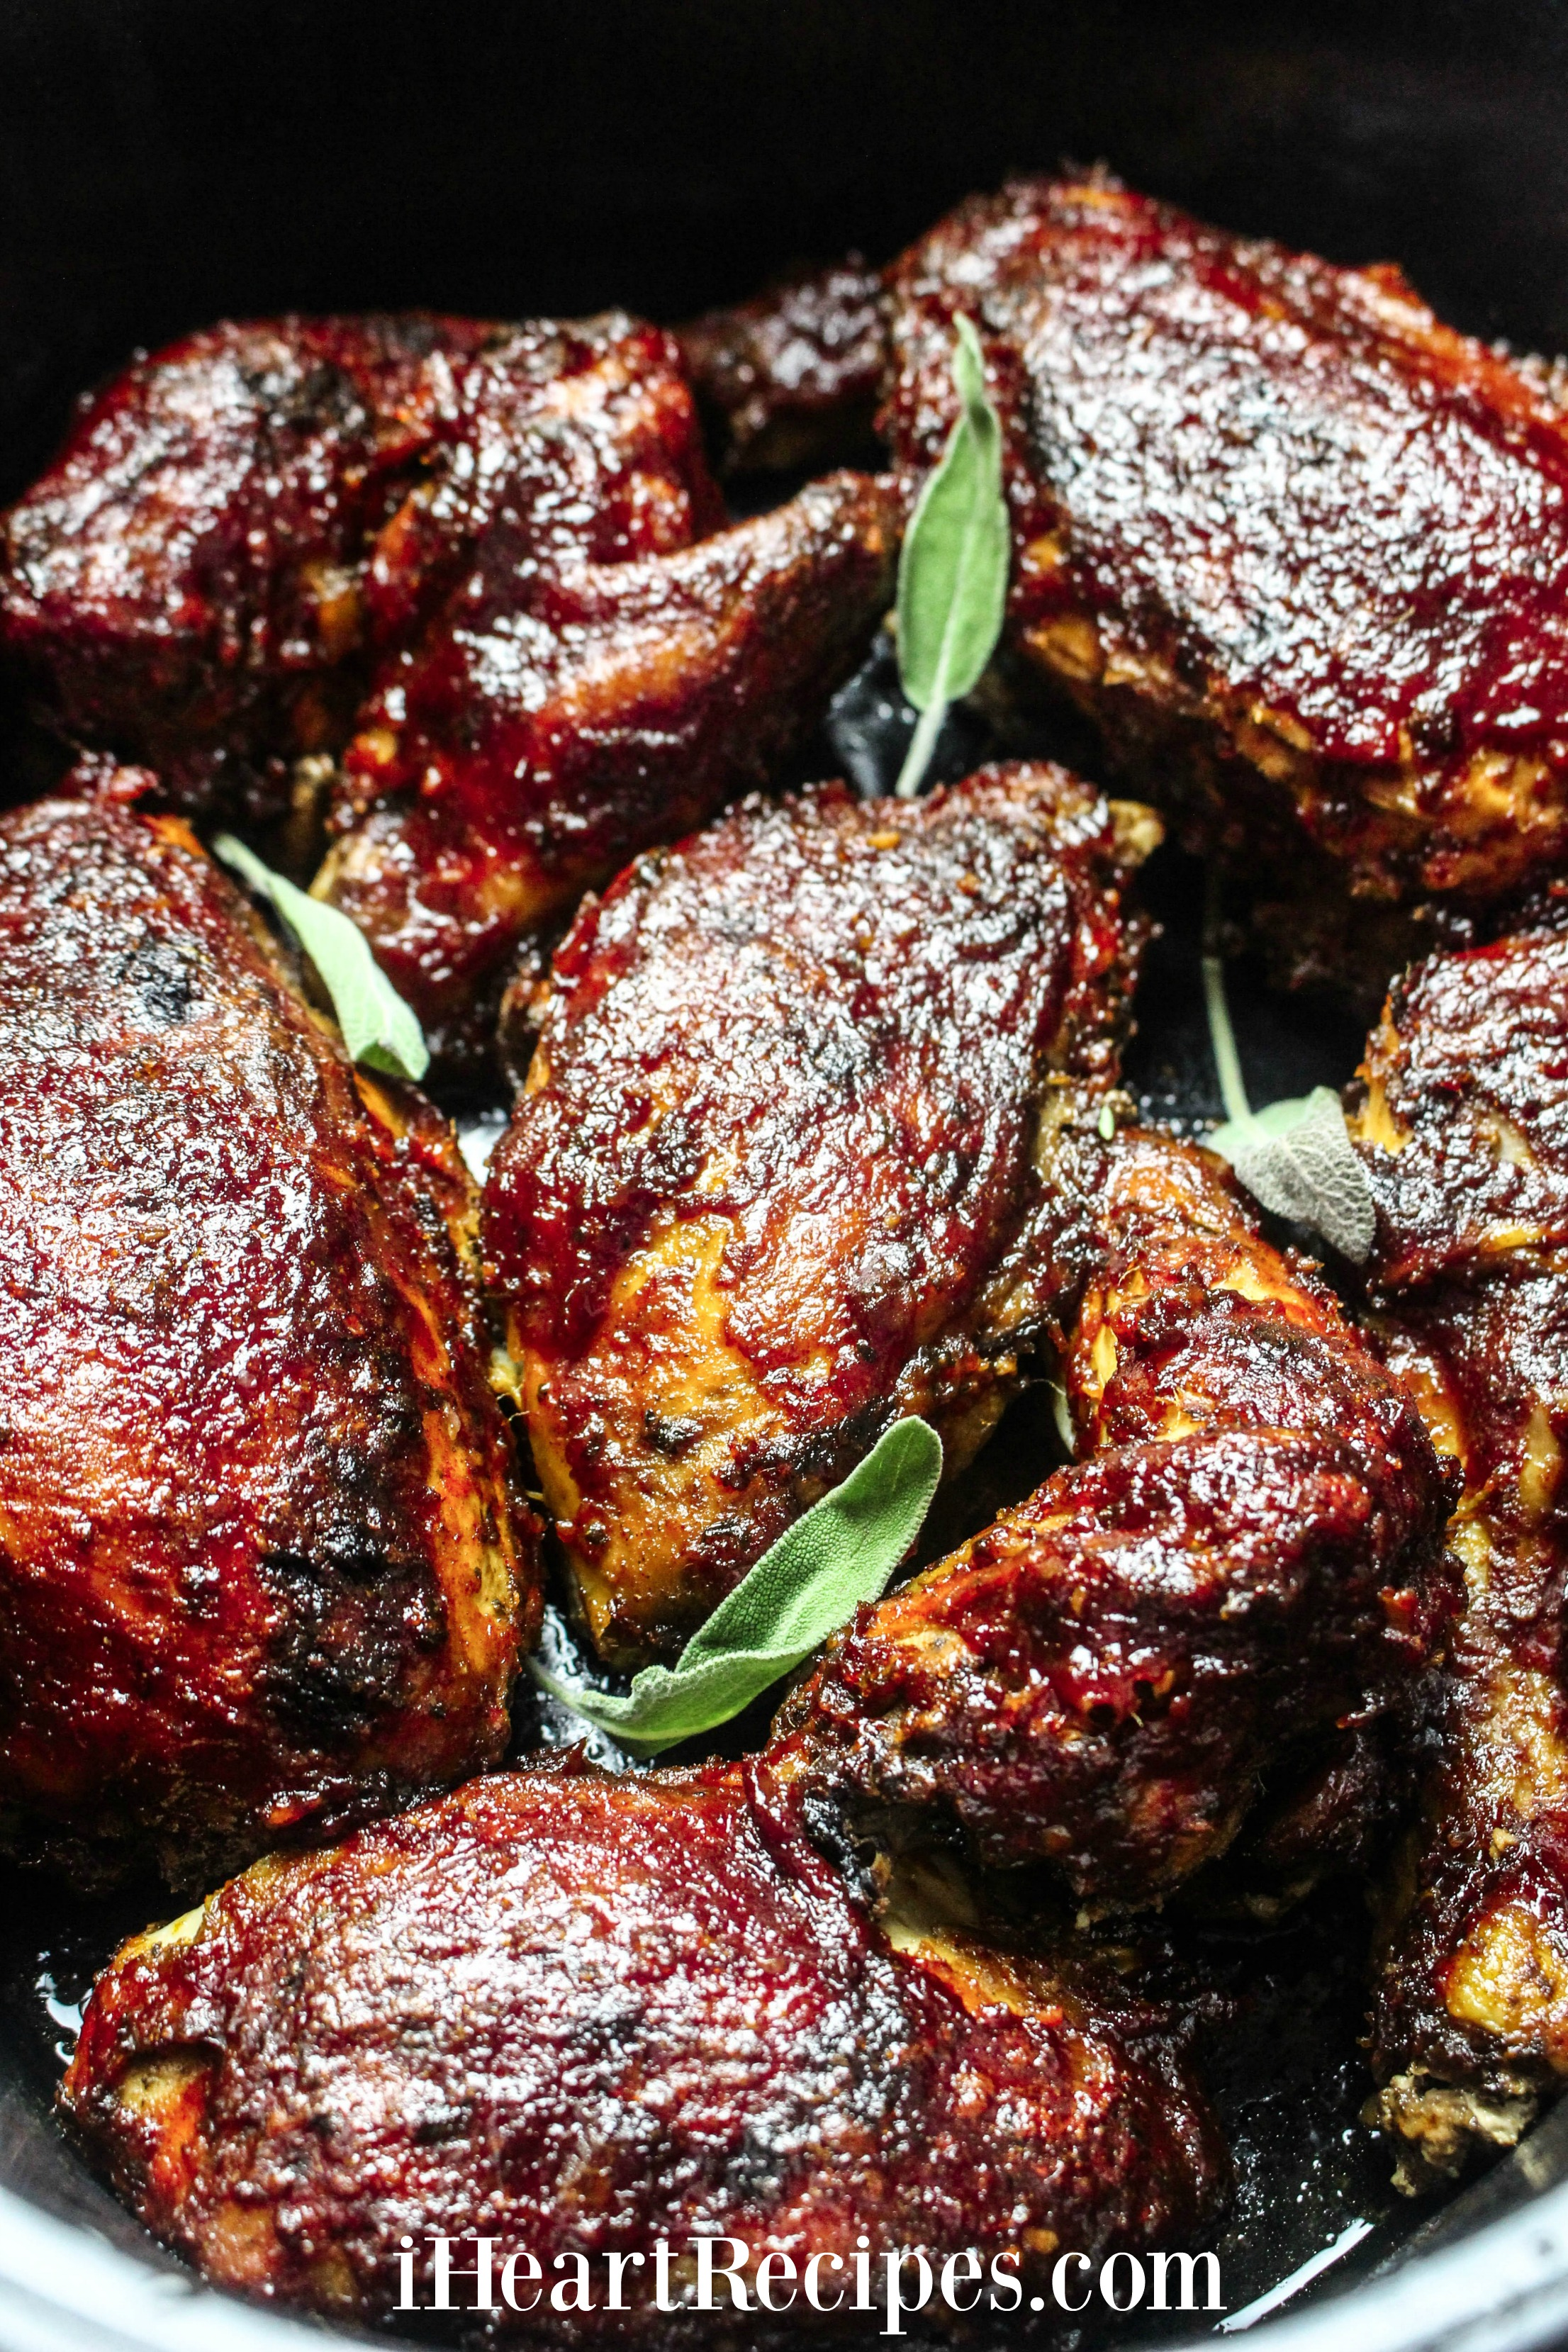 Slow cooked BBQ chicken with tangy sauce